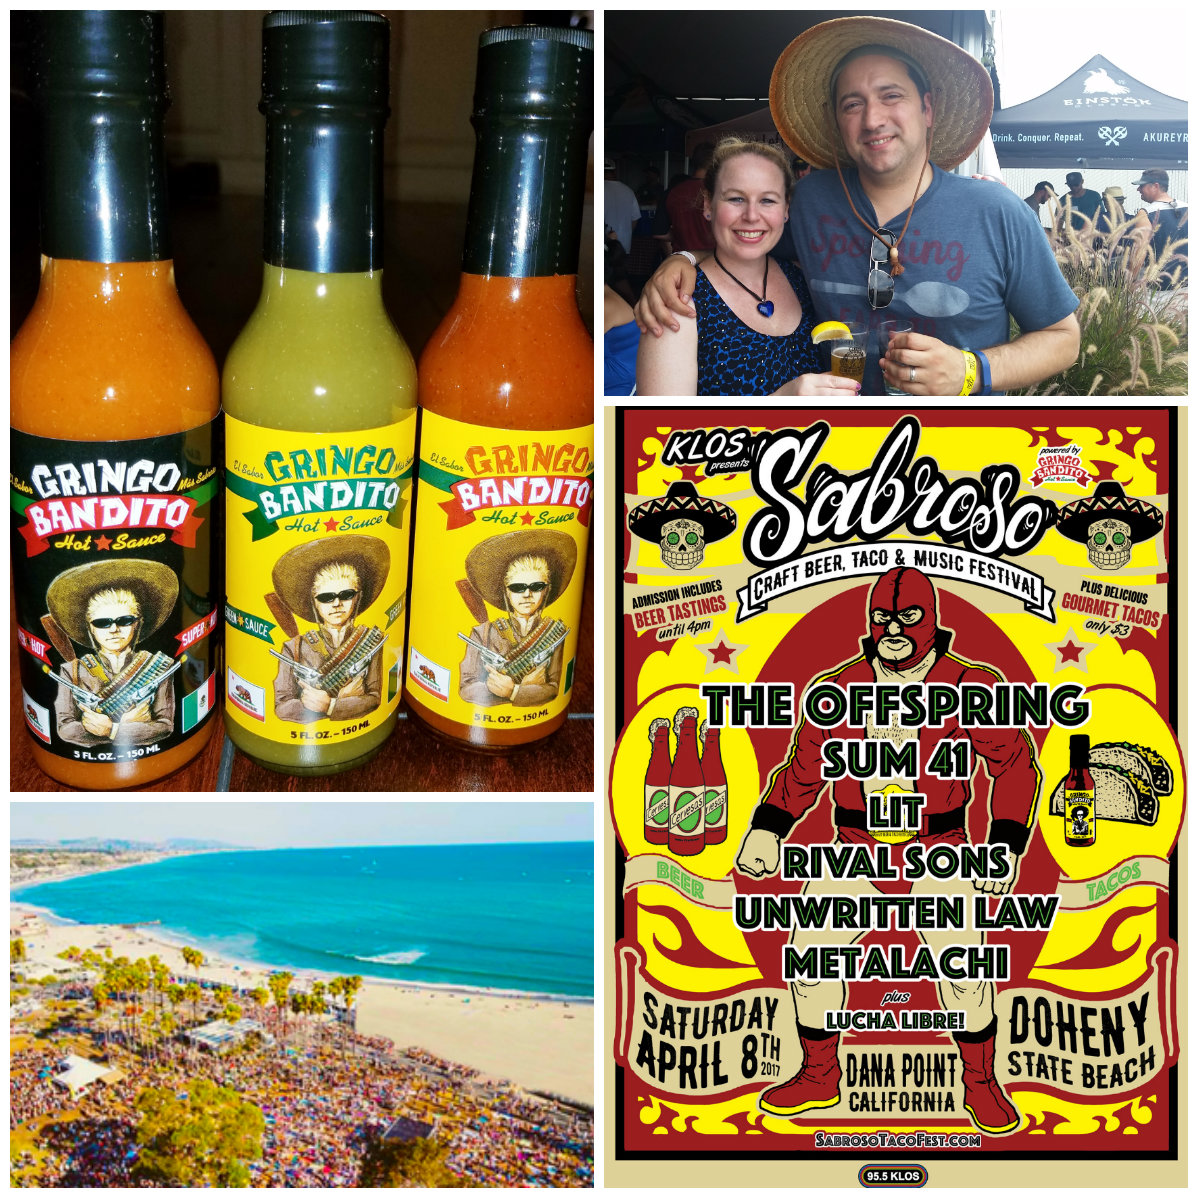 sabroso, craft beer, tacos, music festival, doheny state beach, dana point